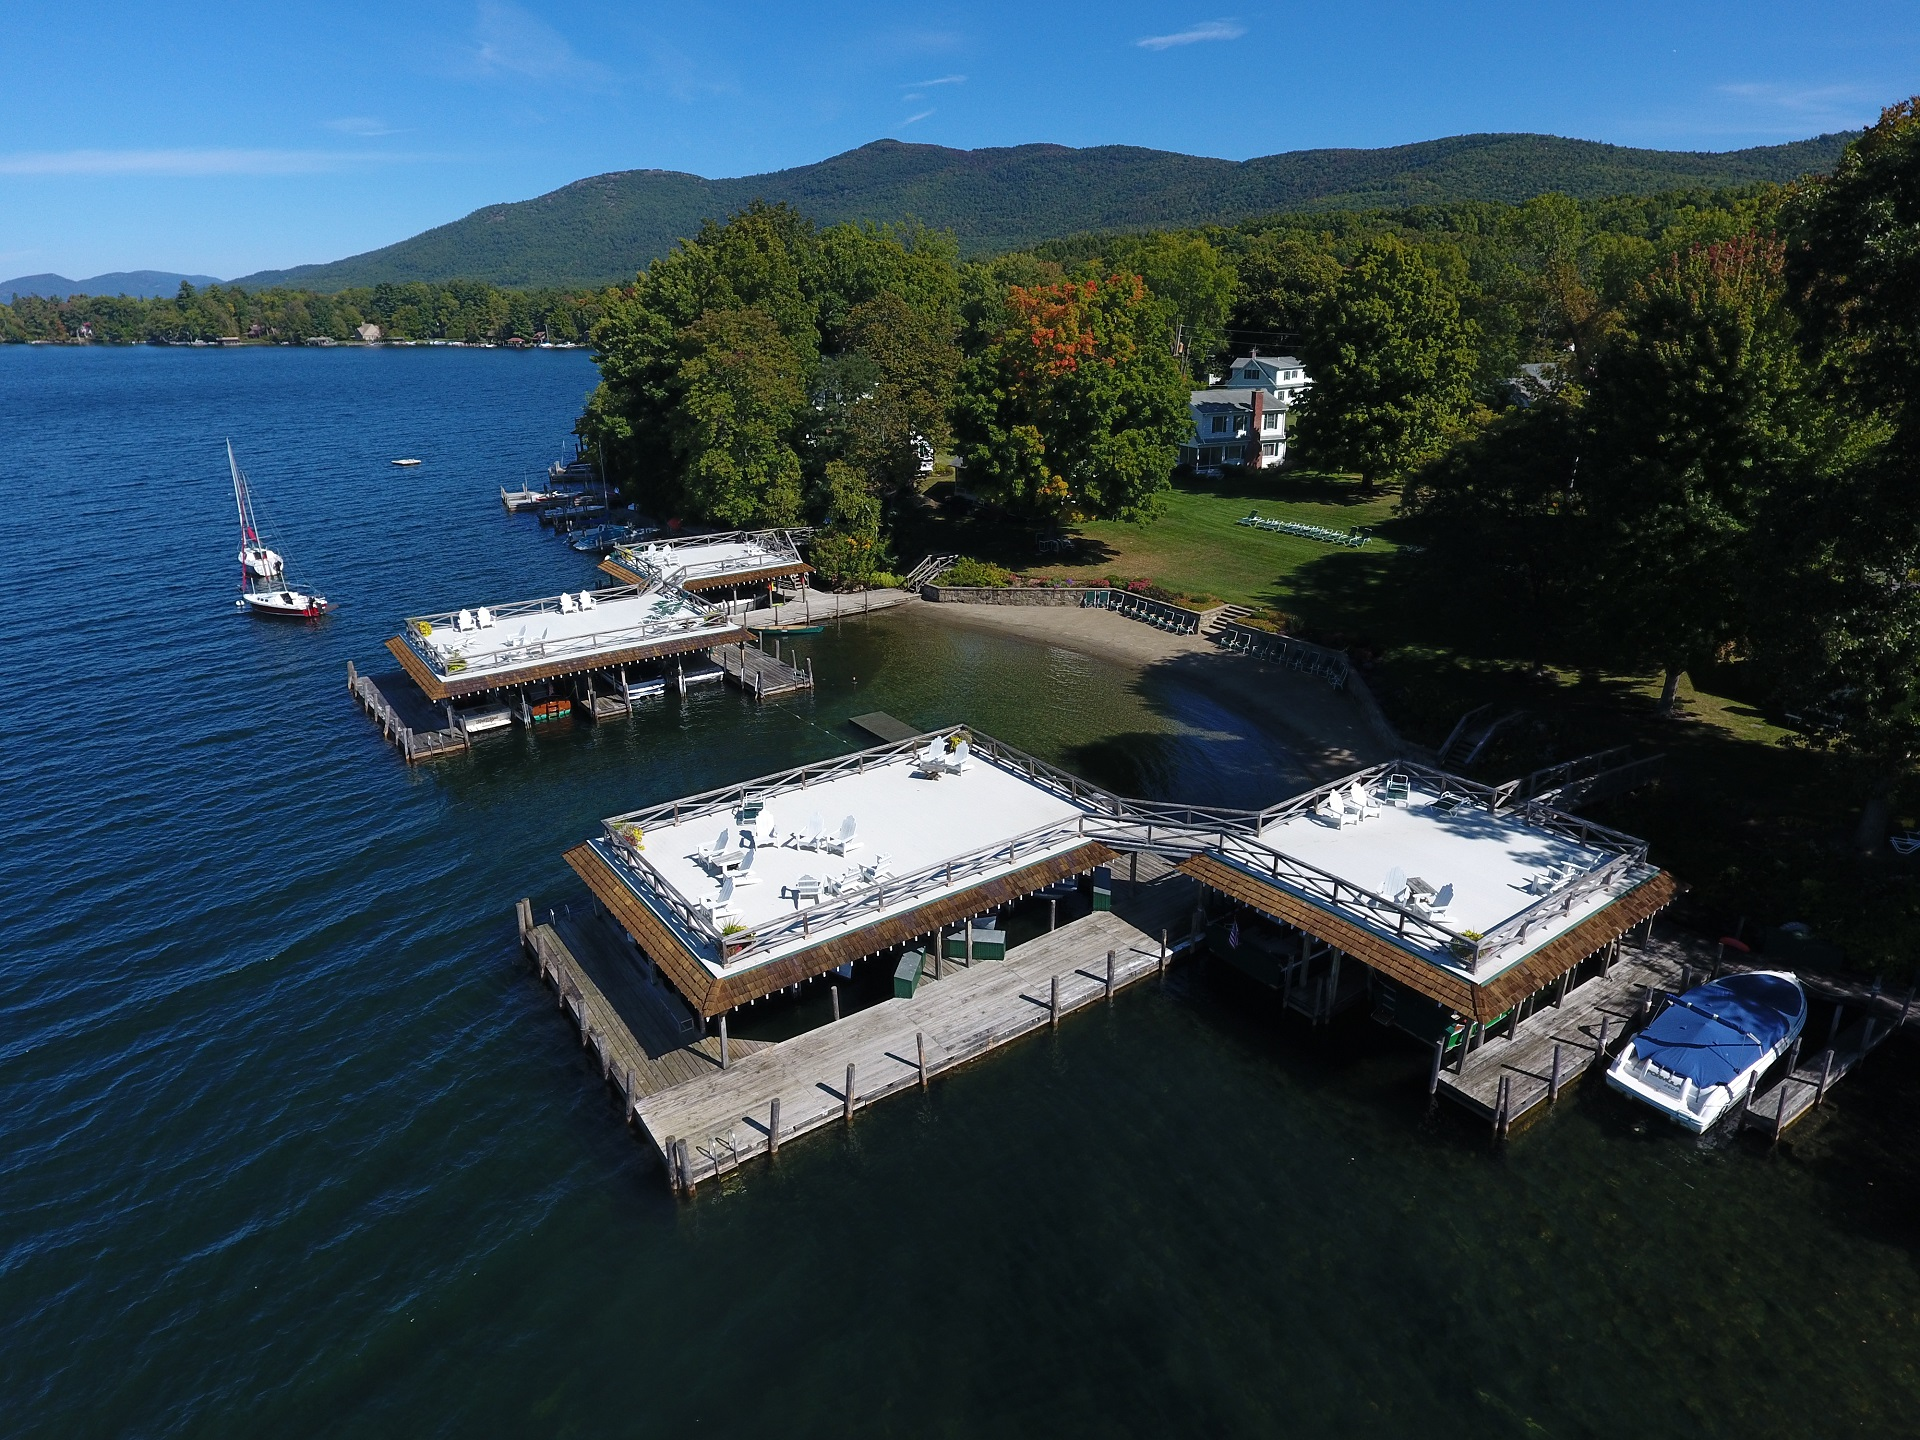 Lake George vacation cabin rentals boathouse sundecks and beach with fall foliage at Takundewide Cottages on Lake George